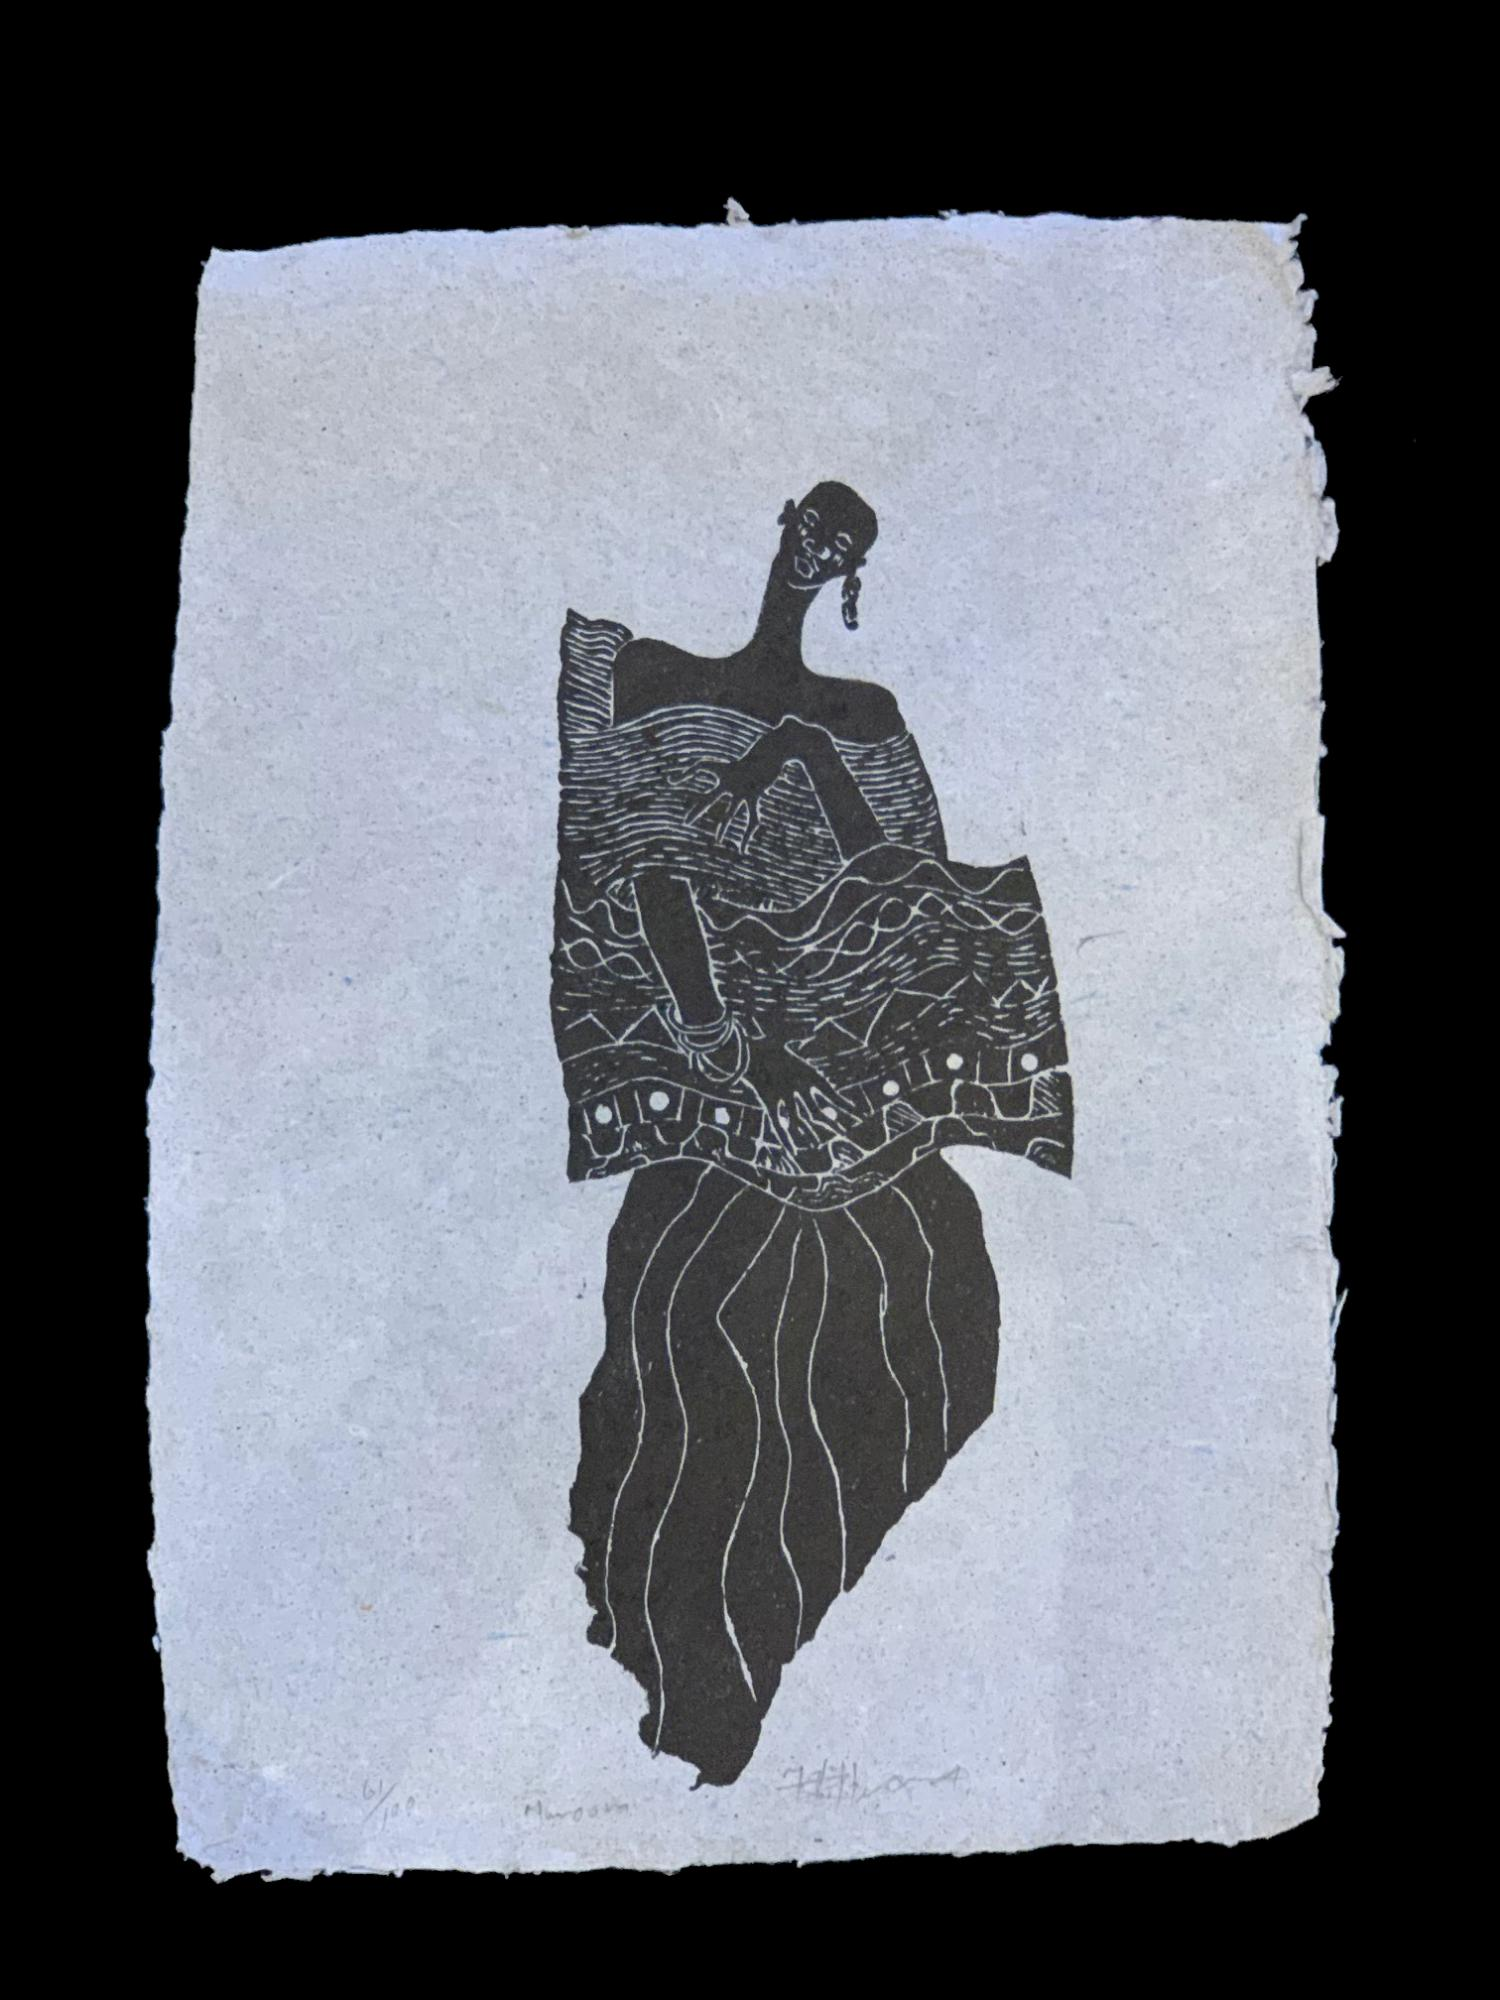 Woman - An etched stone block print ( Signed limited edition # 61/100)by the late Anderson Mukomberanwa